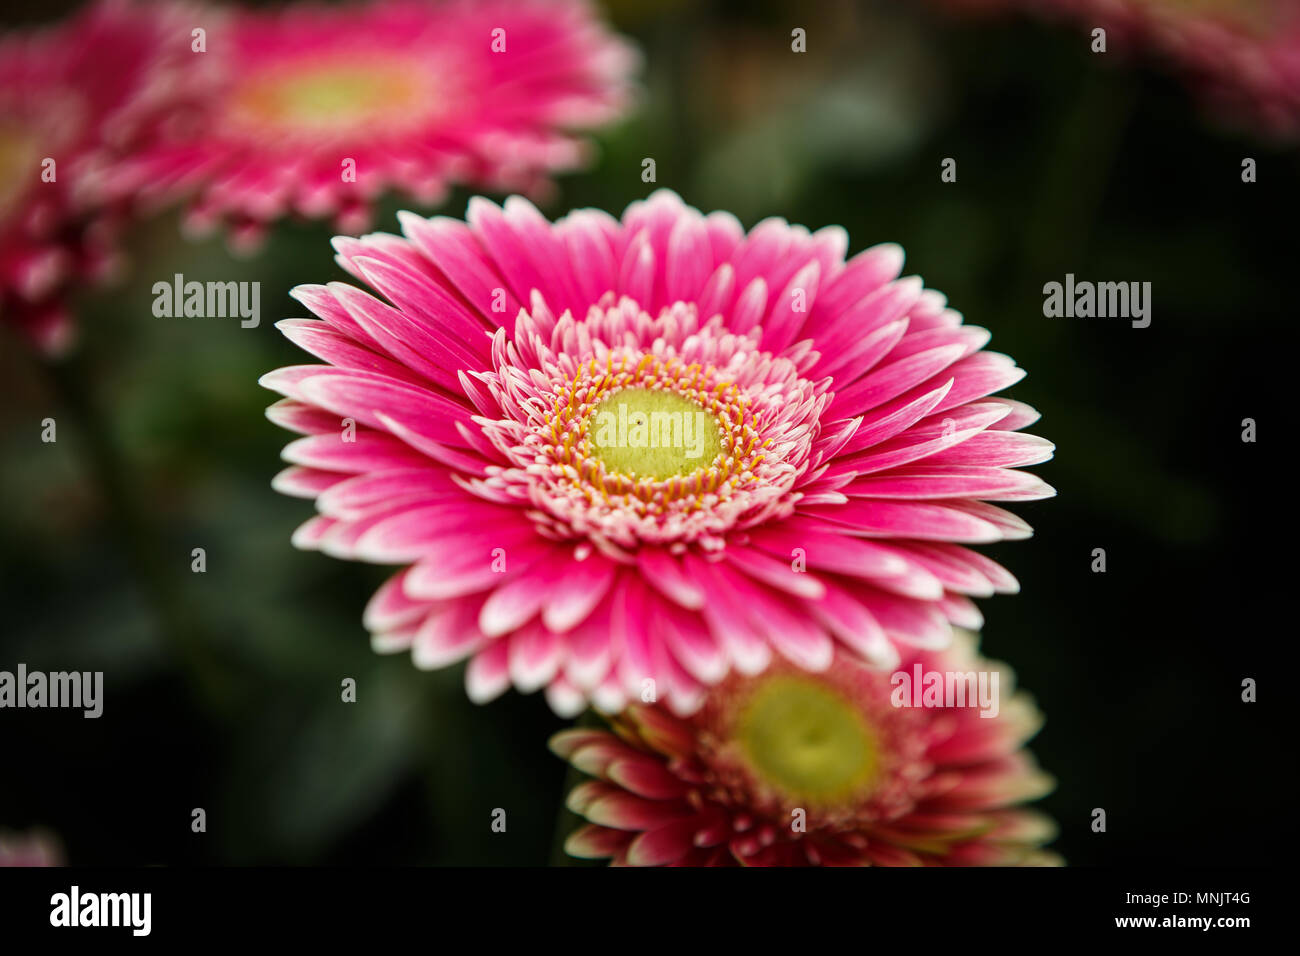 Beautiful colorful pink transvaal daisies flowers bloom in spring garden.Decorative wallpaper with gerbera flower blossom in springtime.Beauty of natu - Stock Image